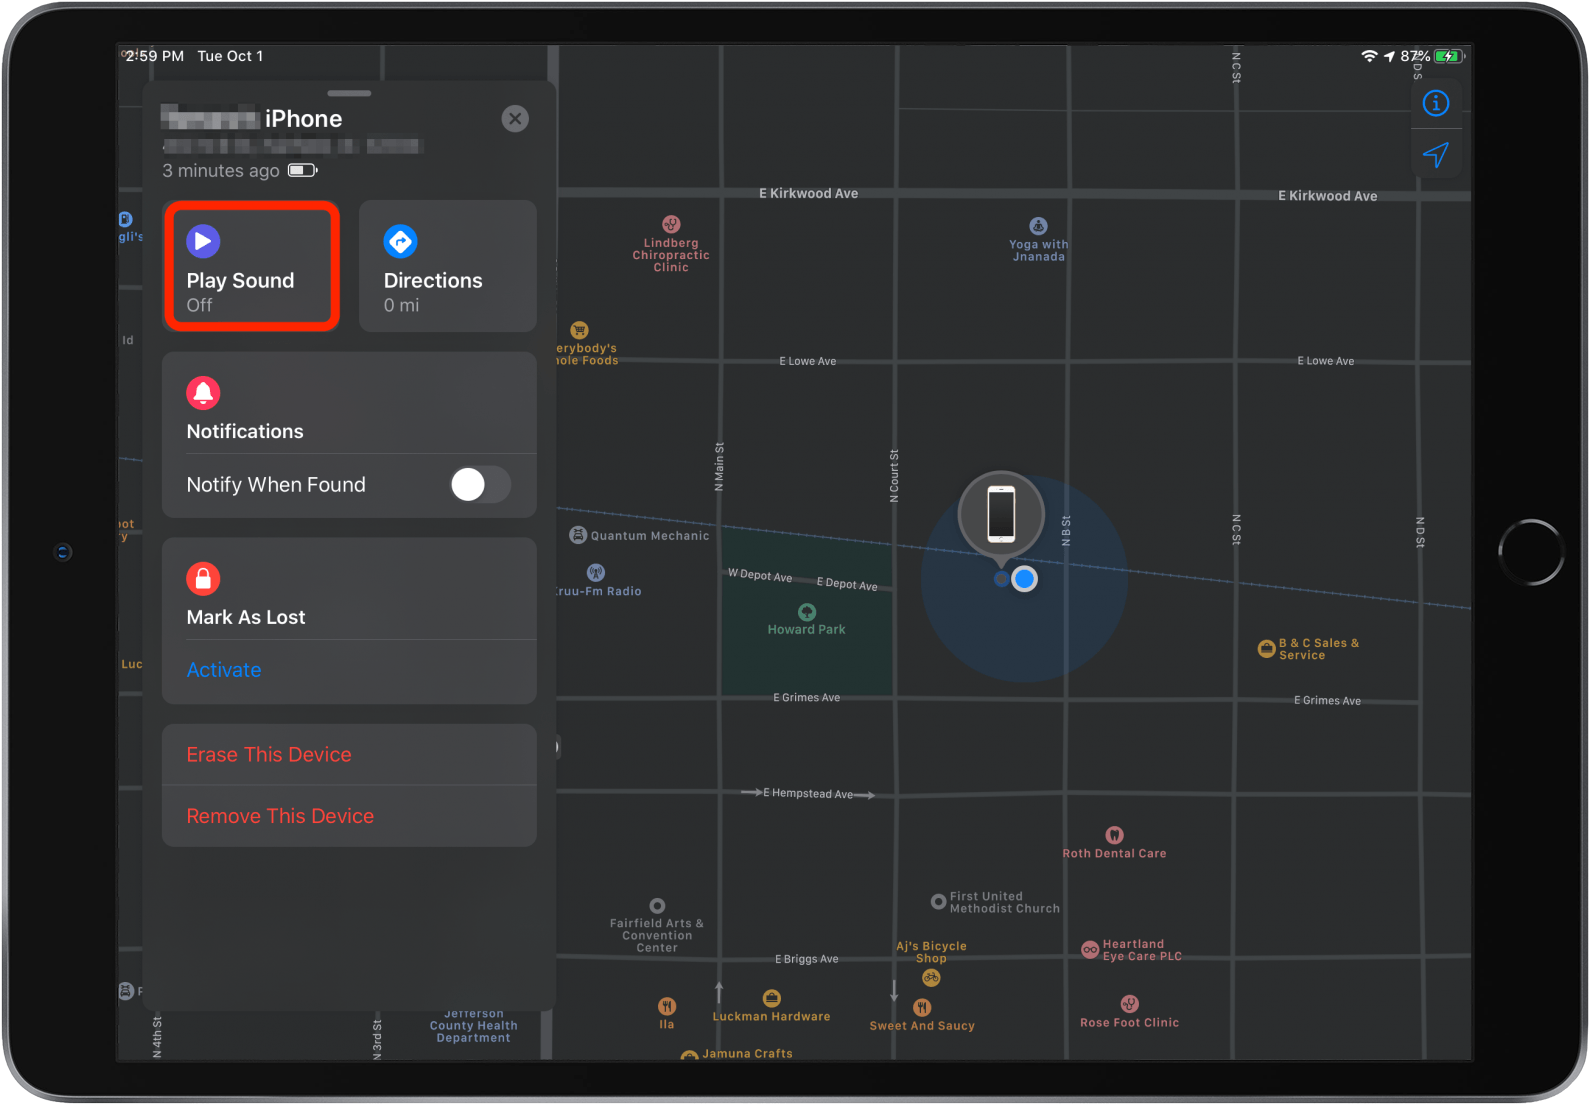 Add your iPad to Find My - Apple Support